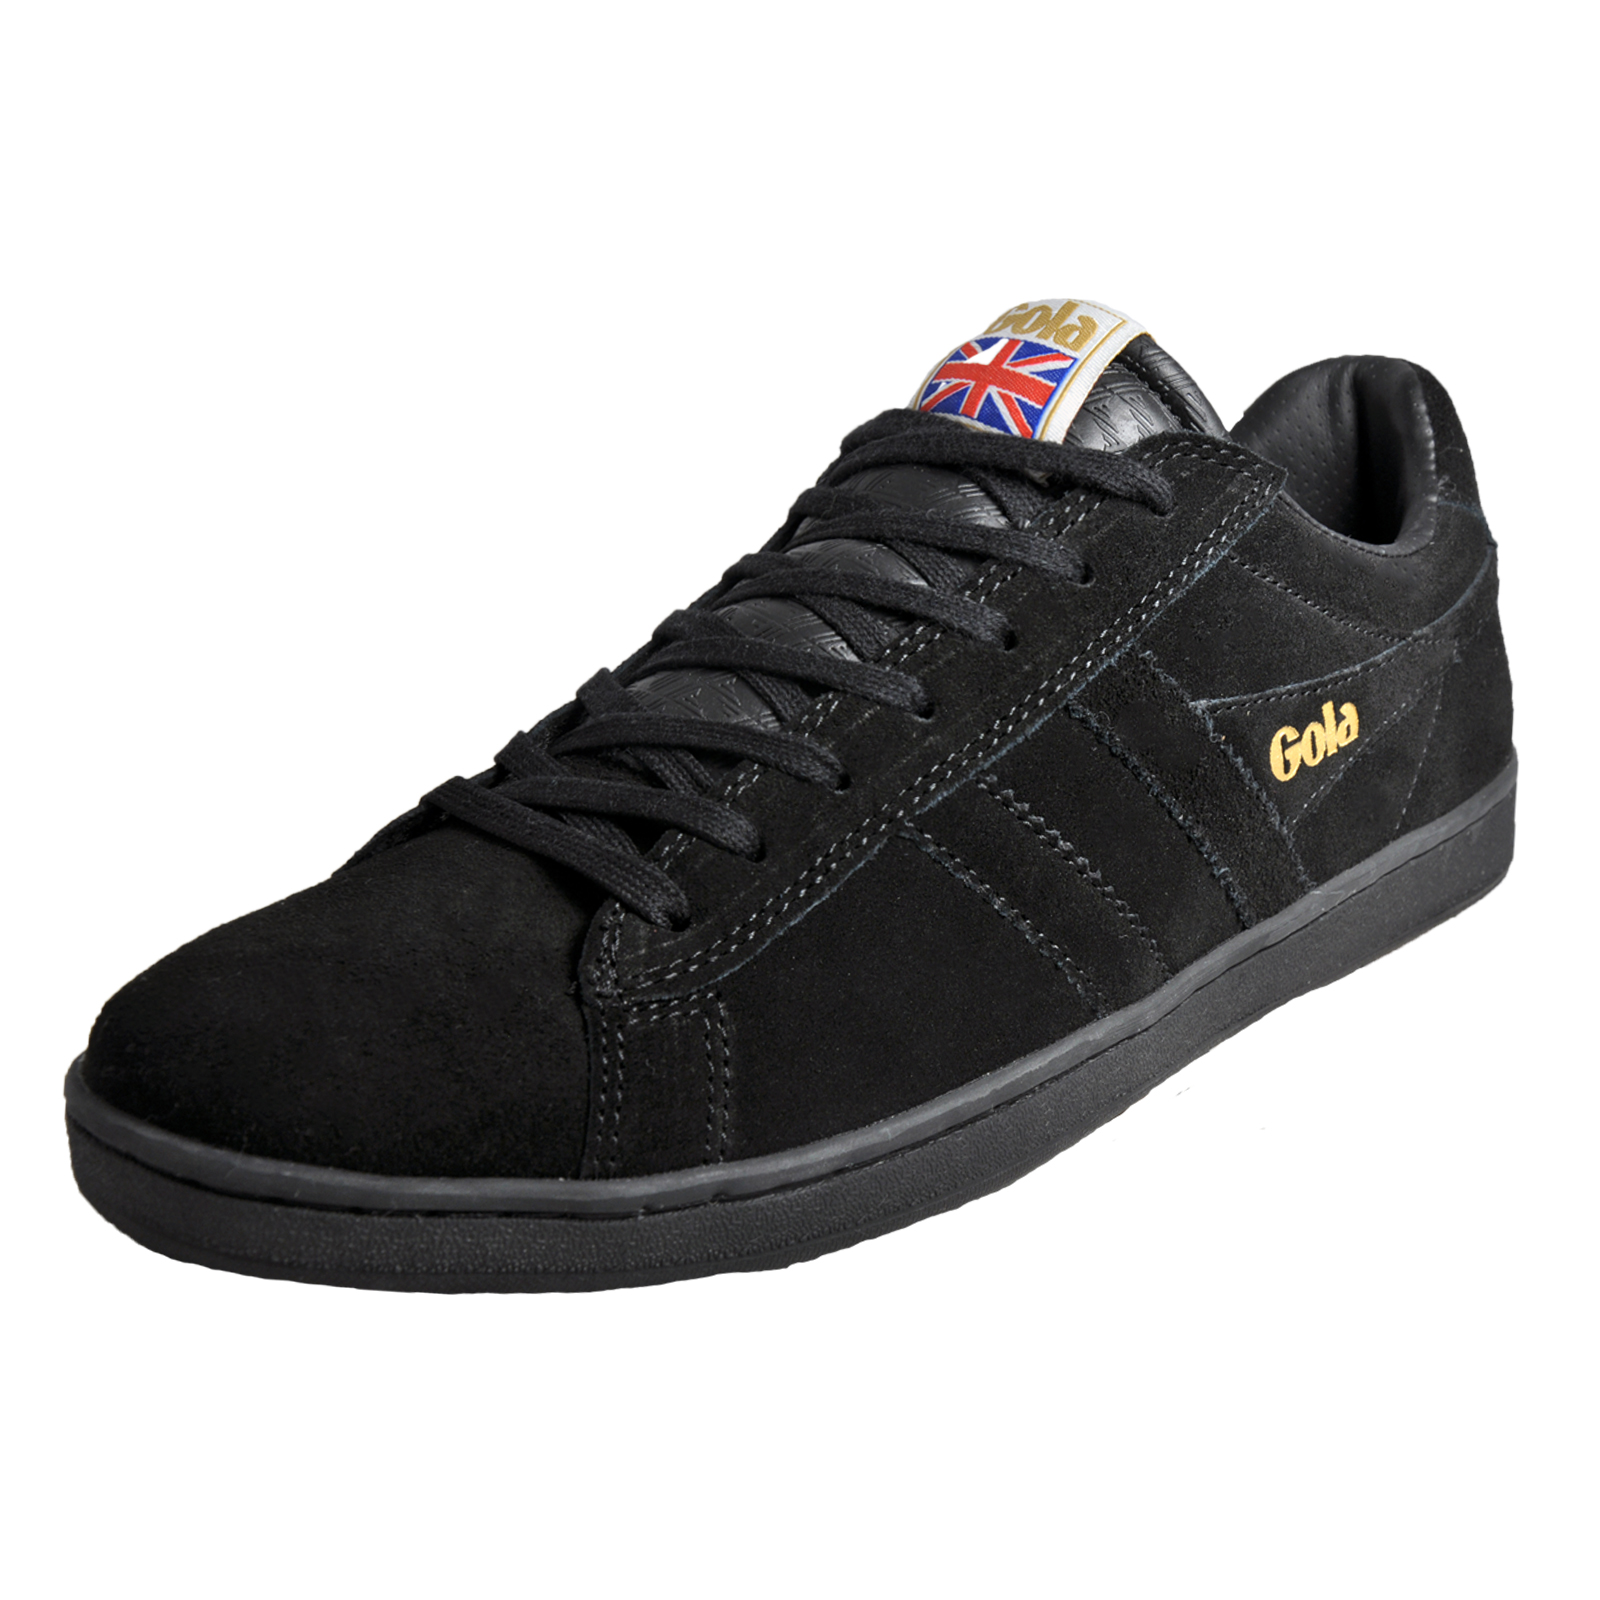 Gola Classics Equipe Suede Leather Mens Classic Casual Retro Trainers Black